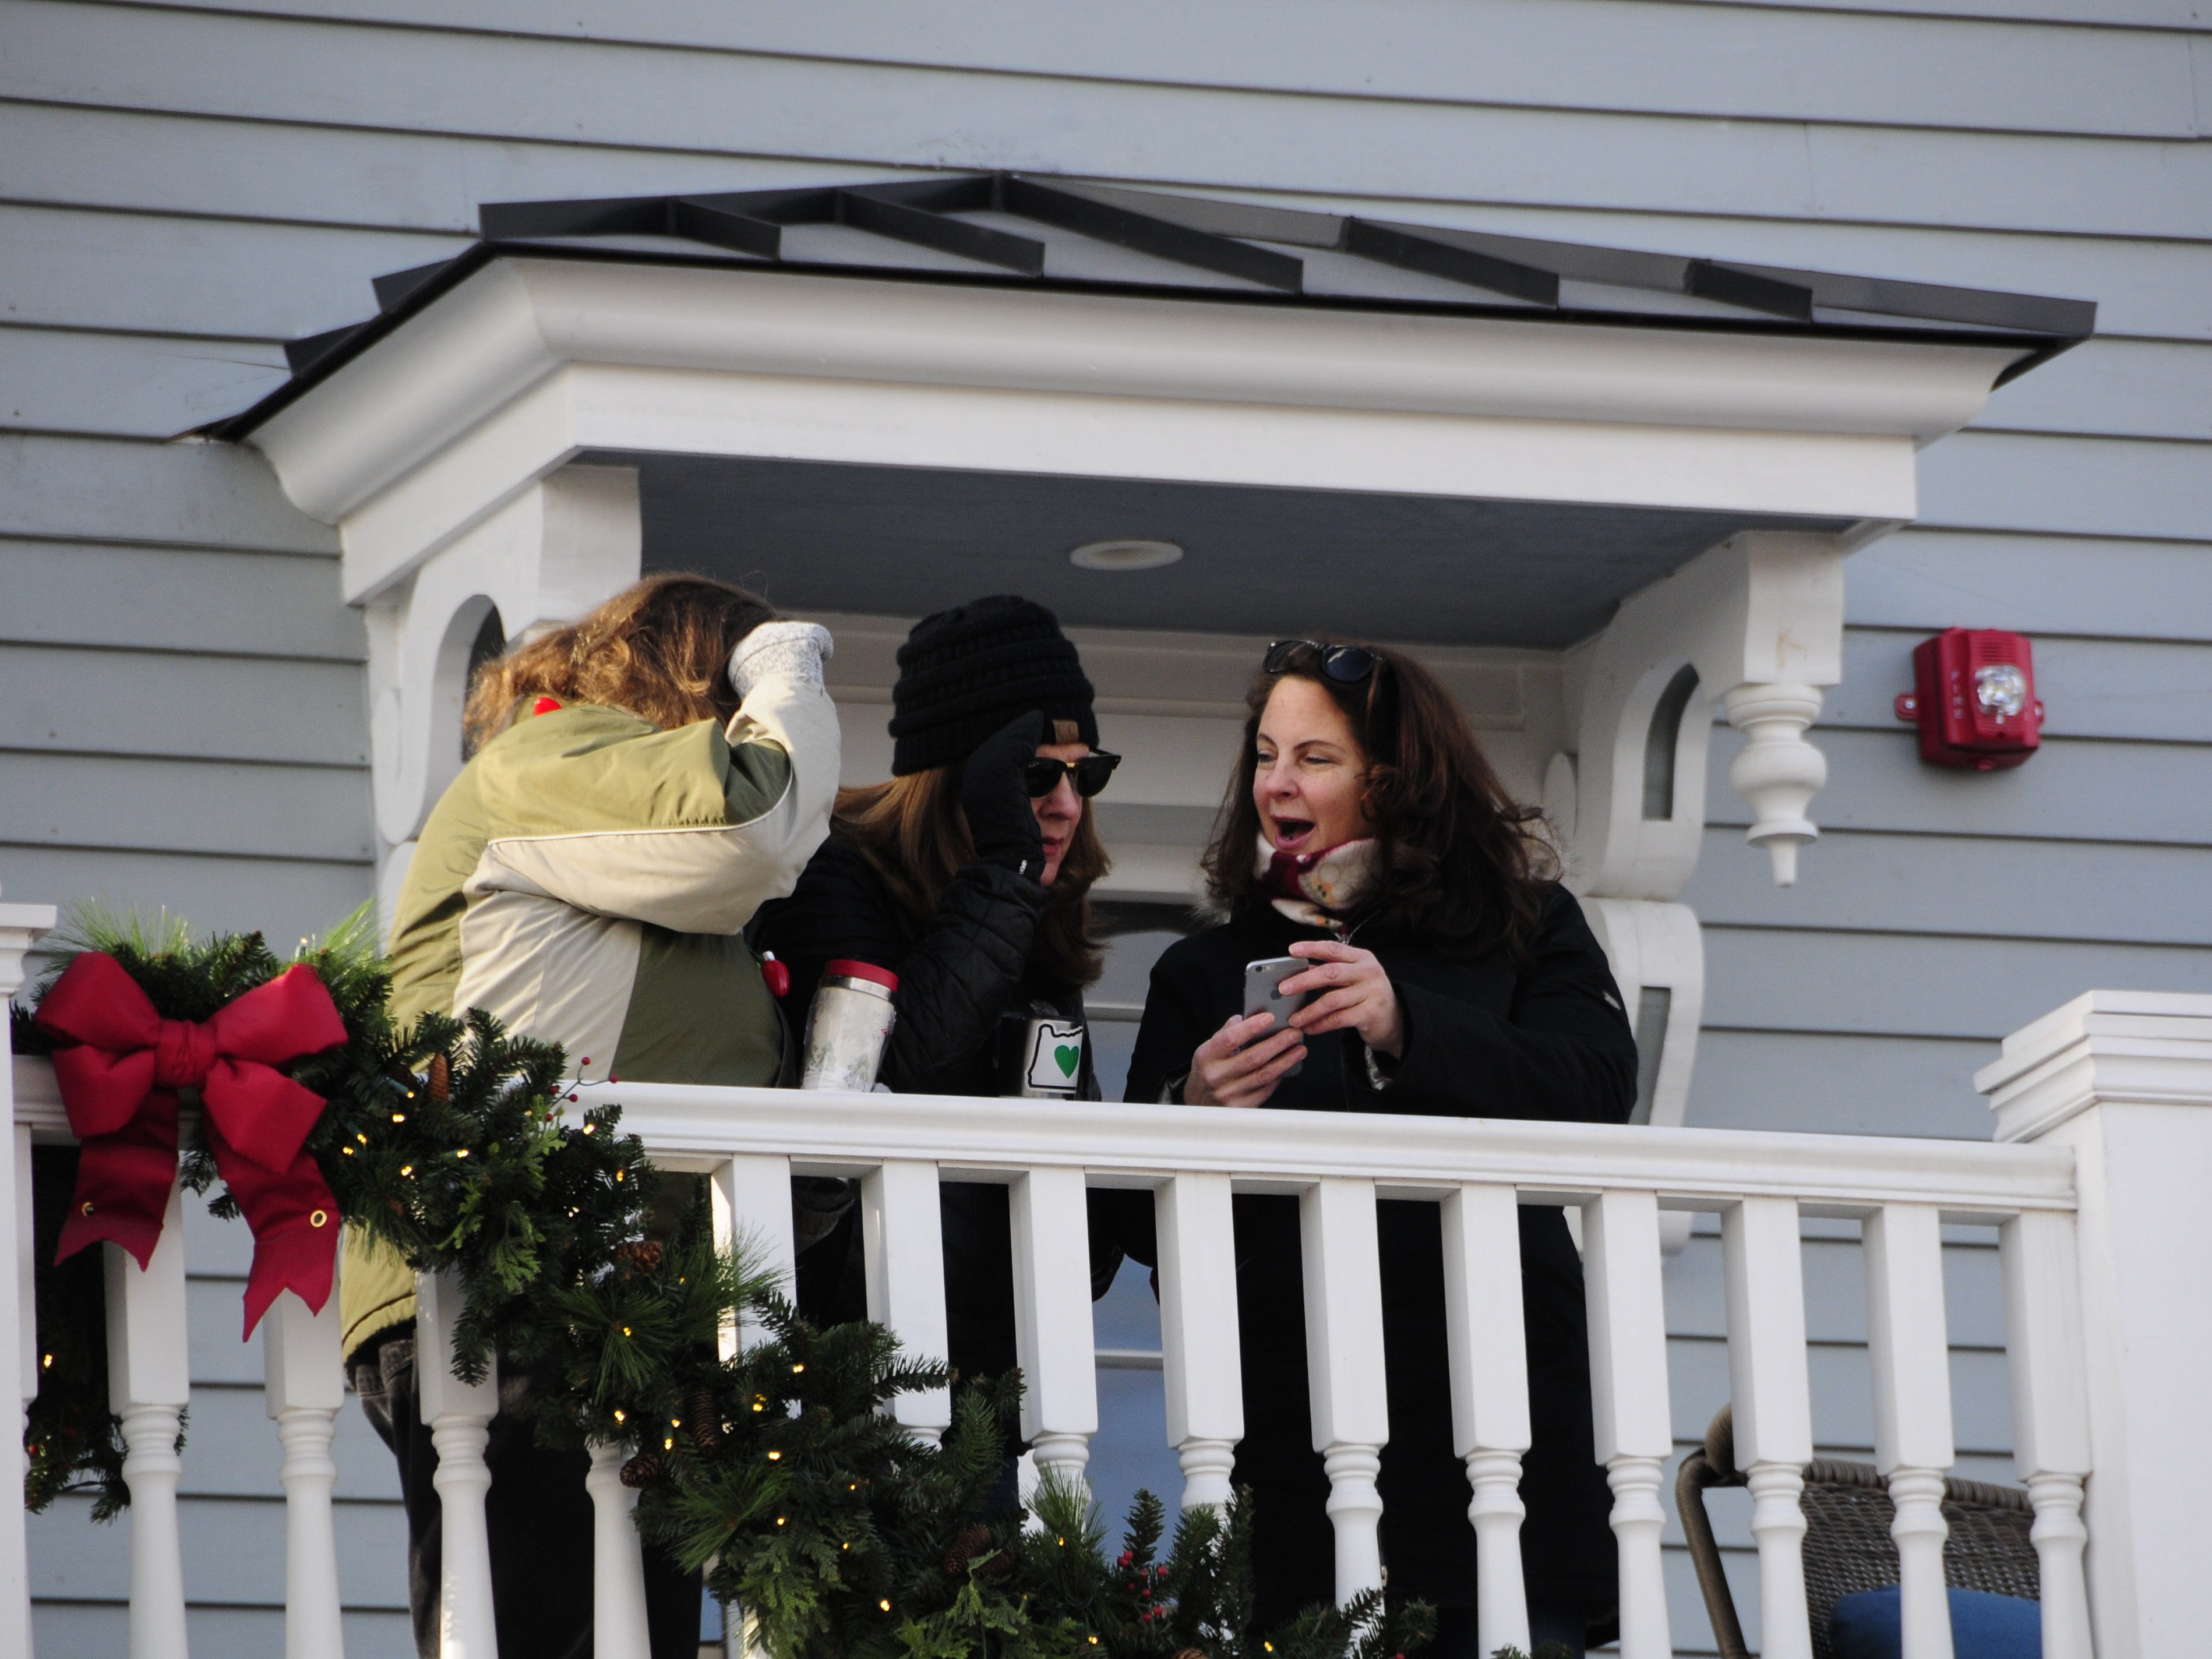 People watch the Lexington Old-Fashioned Christmas Horse Parade on Saturday, Dec. 8, 2018, from the balcony of the Cadillac House.